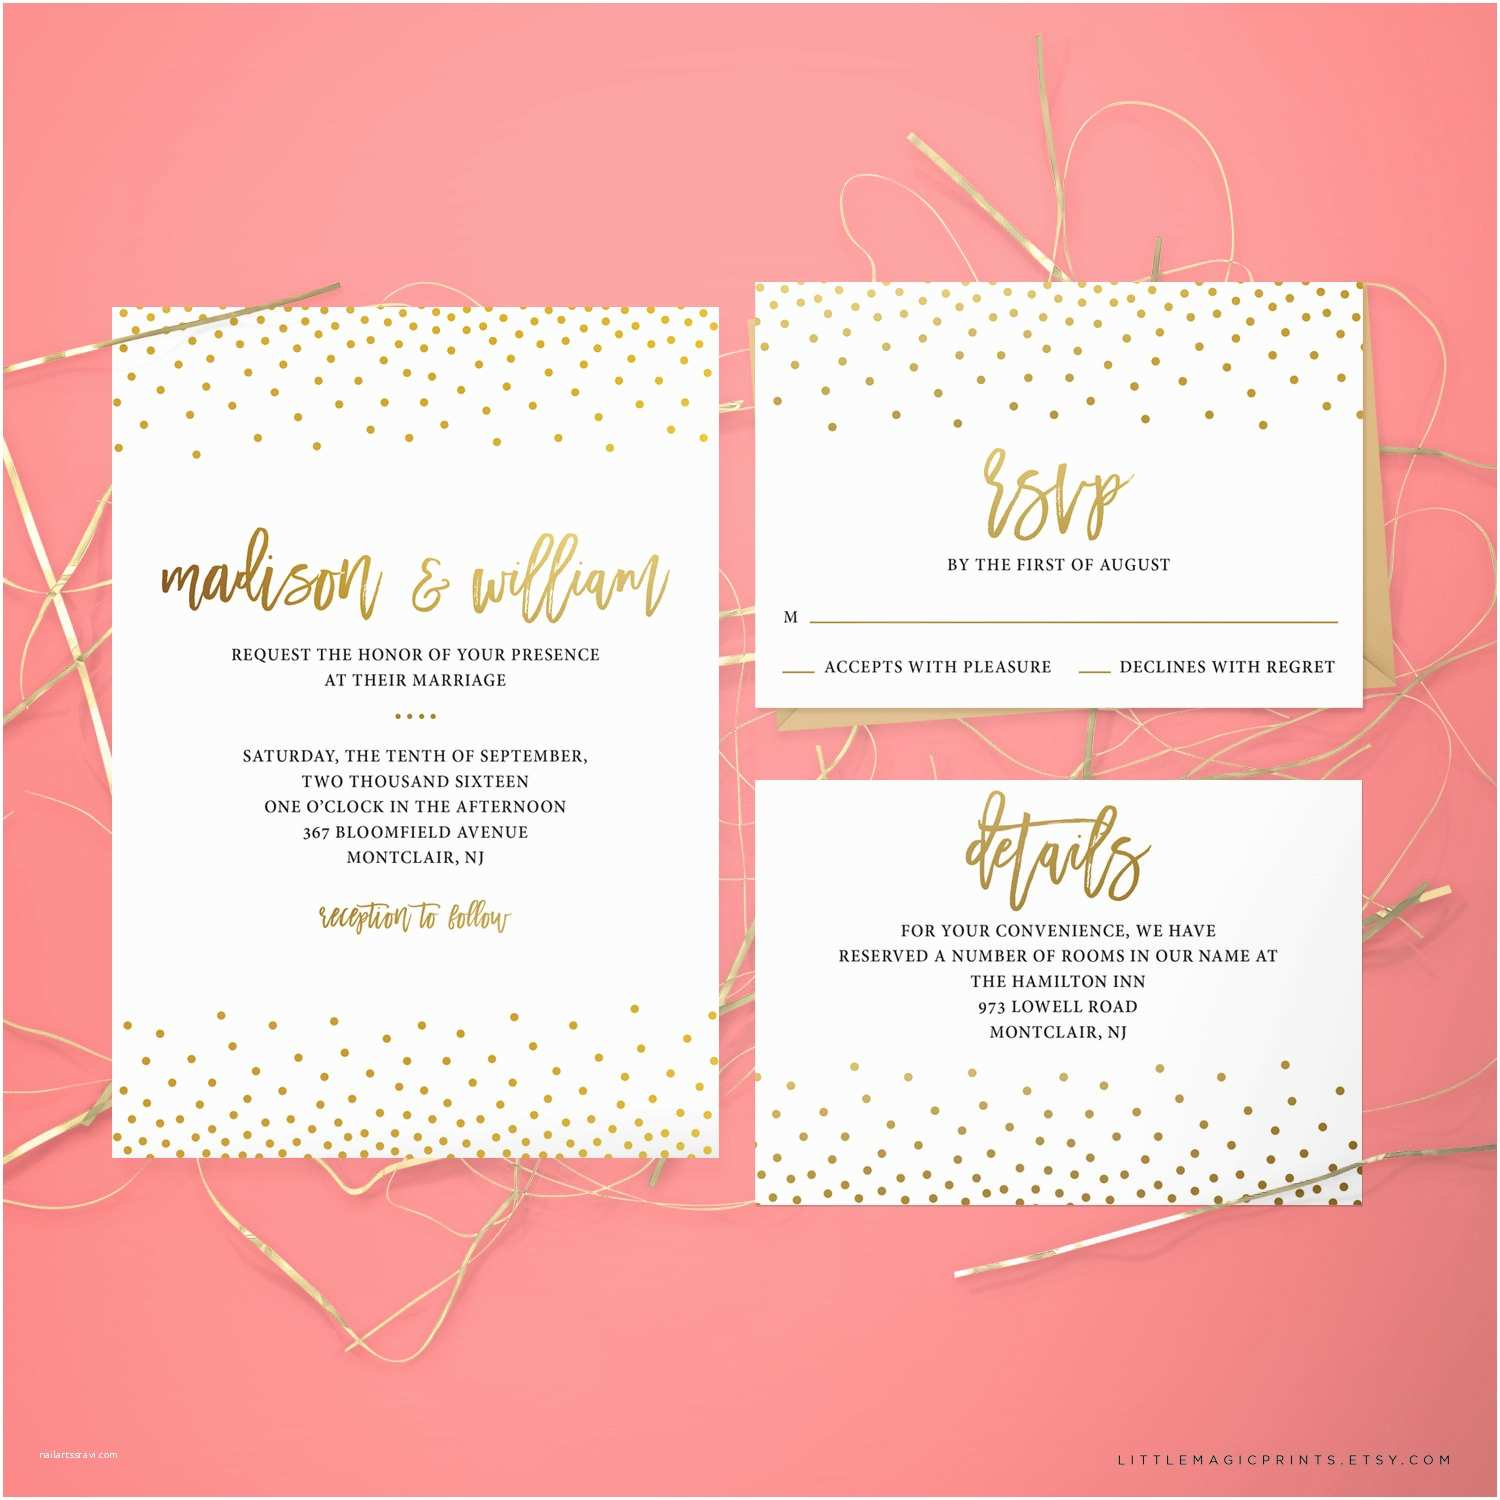 How to Package Wedding Invitations Printable Wedding Invitation Package by Littlemagicprints